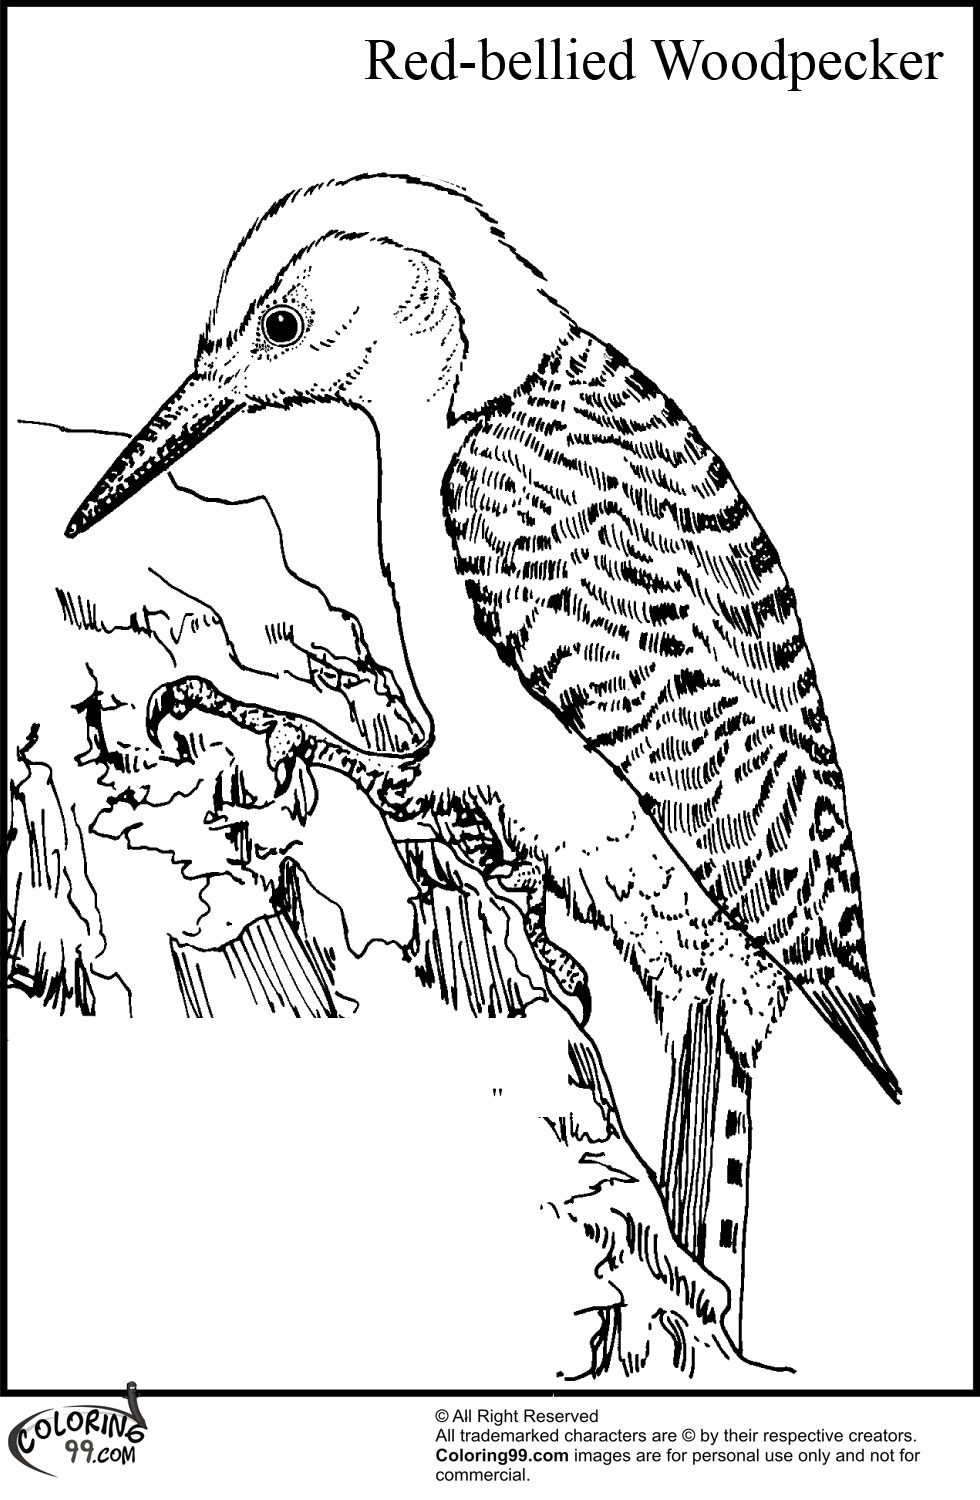 woodpecker coloring page woodpecker coloring pages team colors woodpecker coloring page